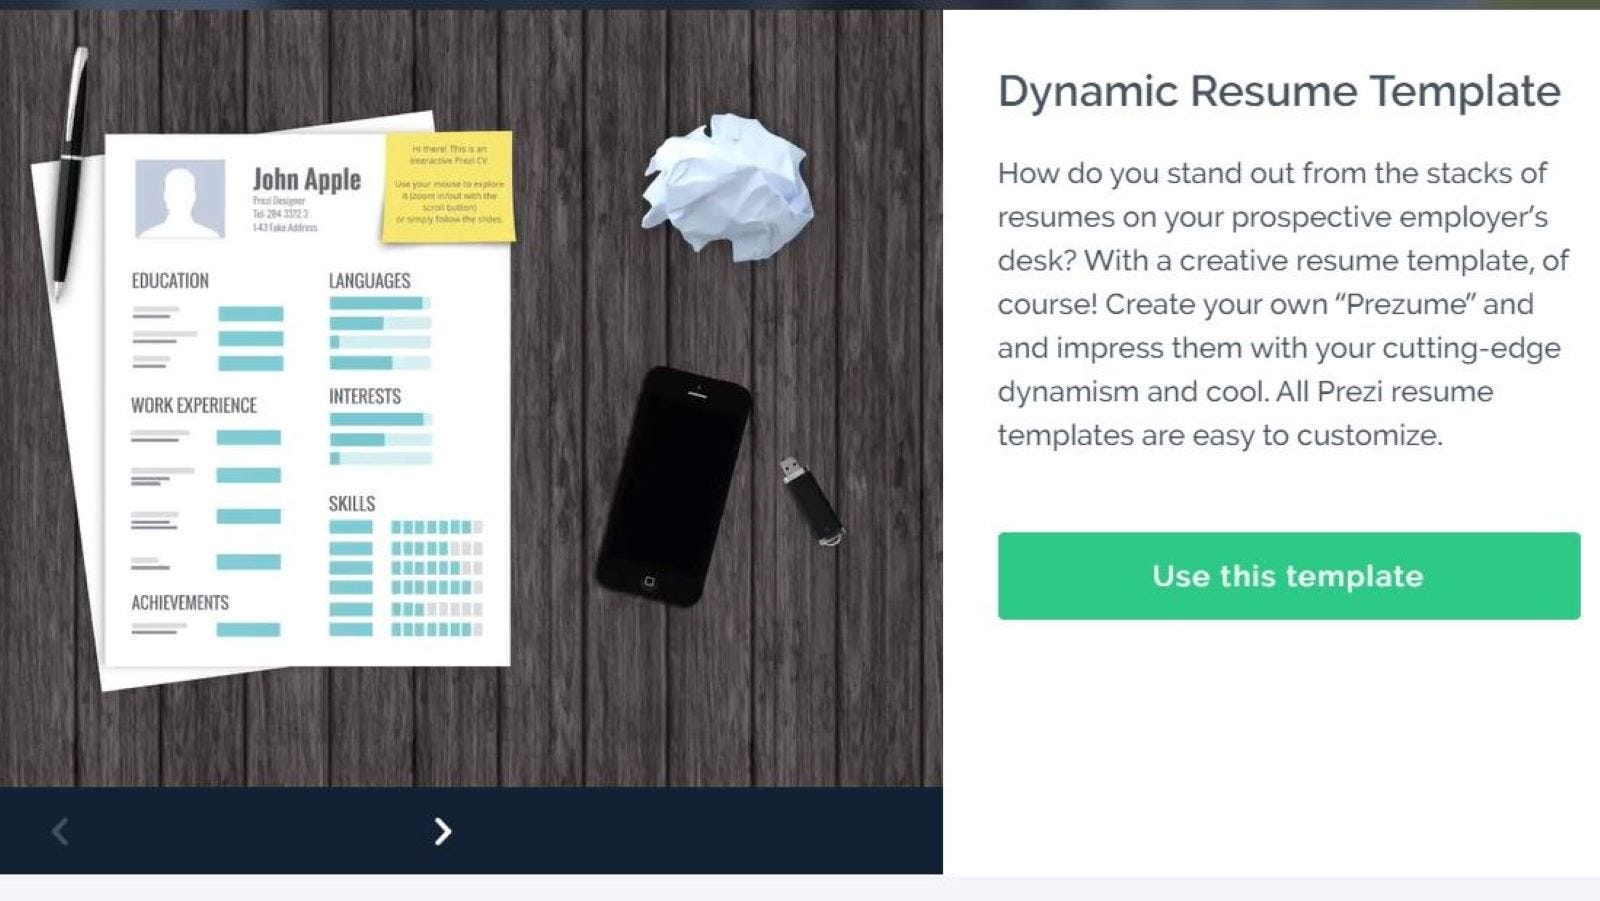 A Dynamic Resume Template on Prezi